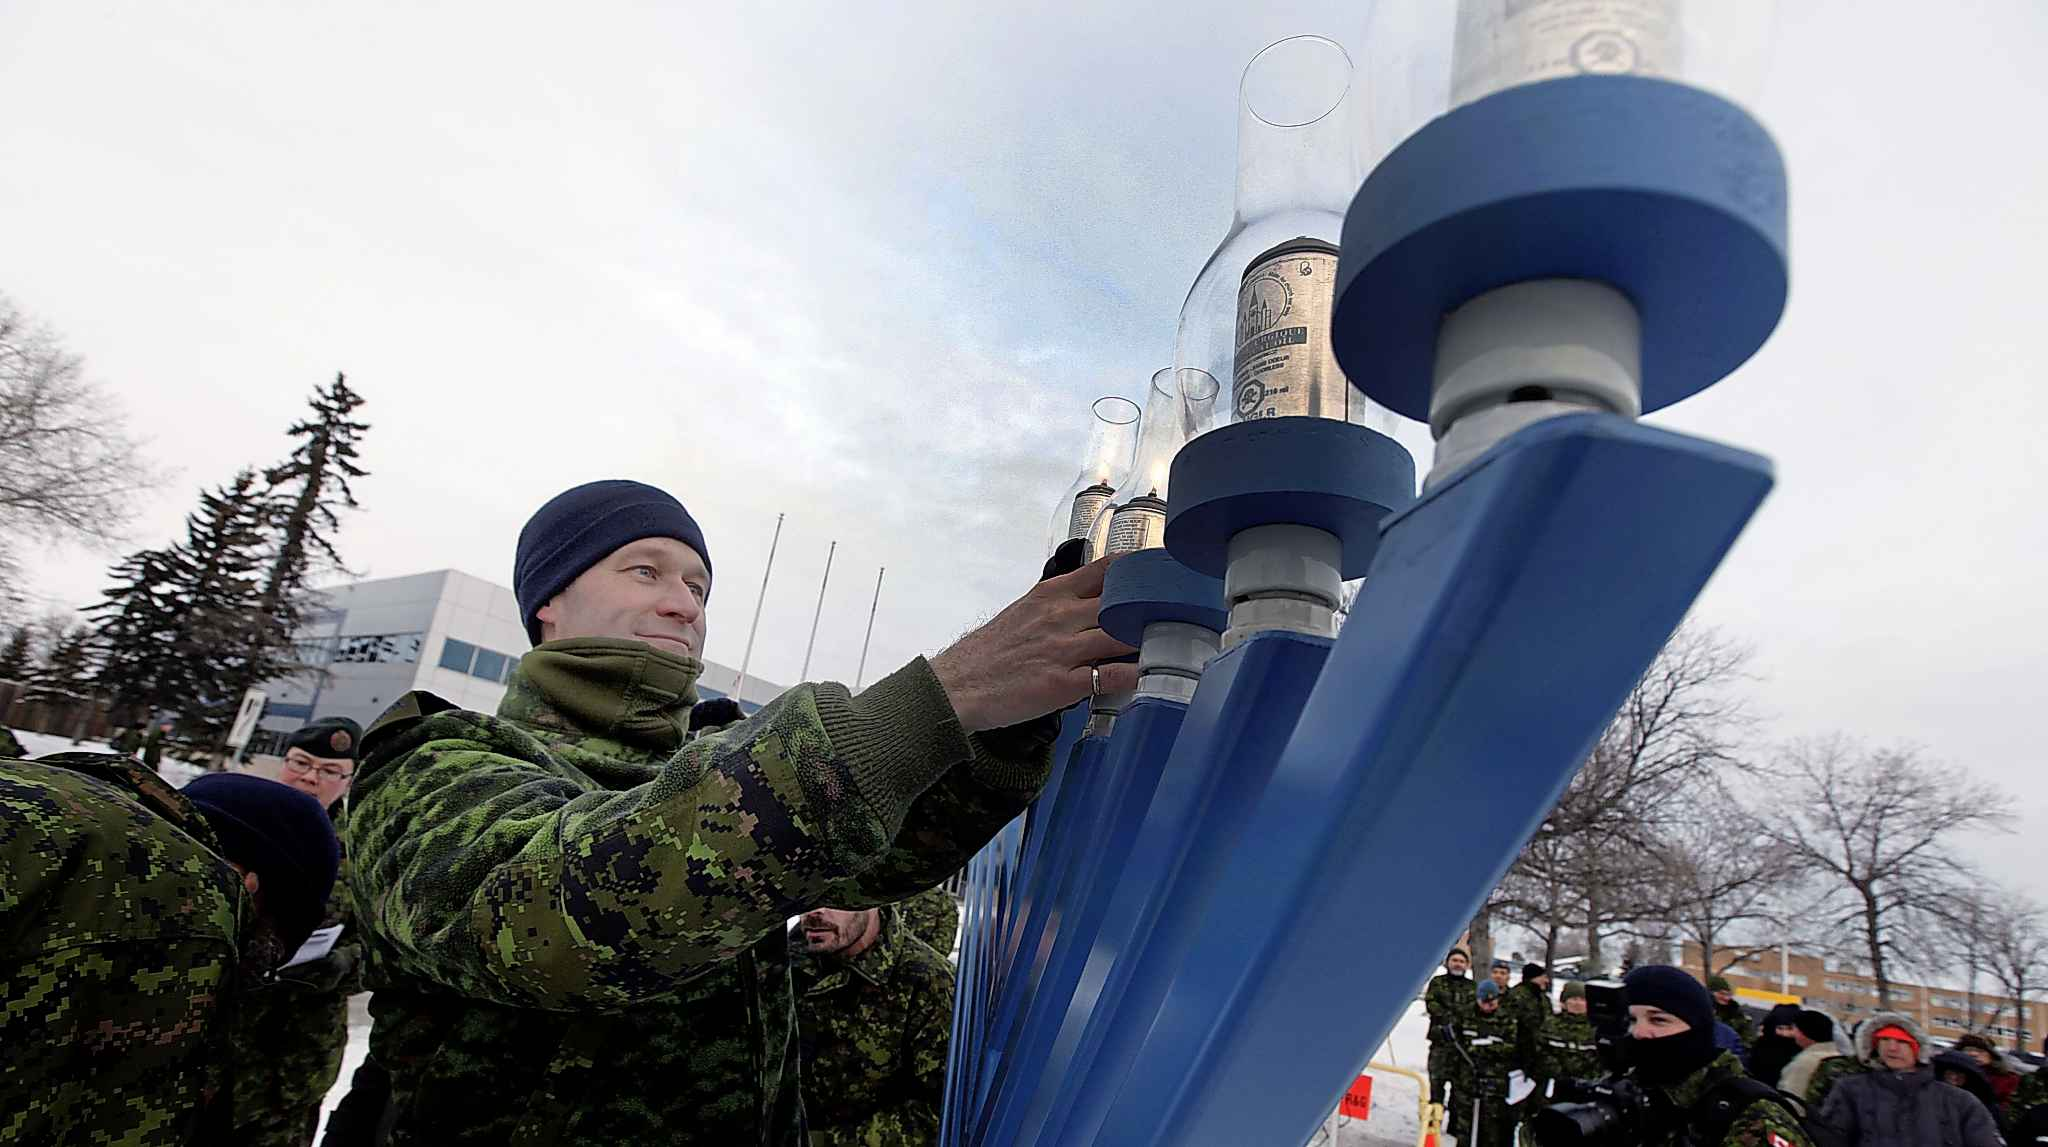 Col. Charron places lit candles on the menorah at 17 Wing in December 2018. (Phil Hossack / Winnipeg Free Press files)